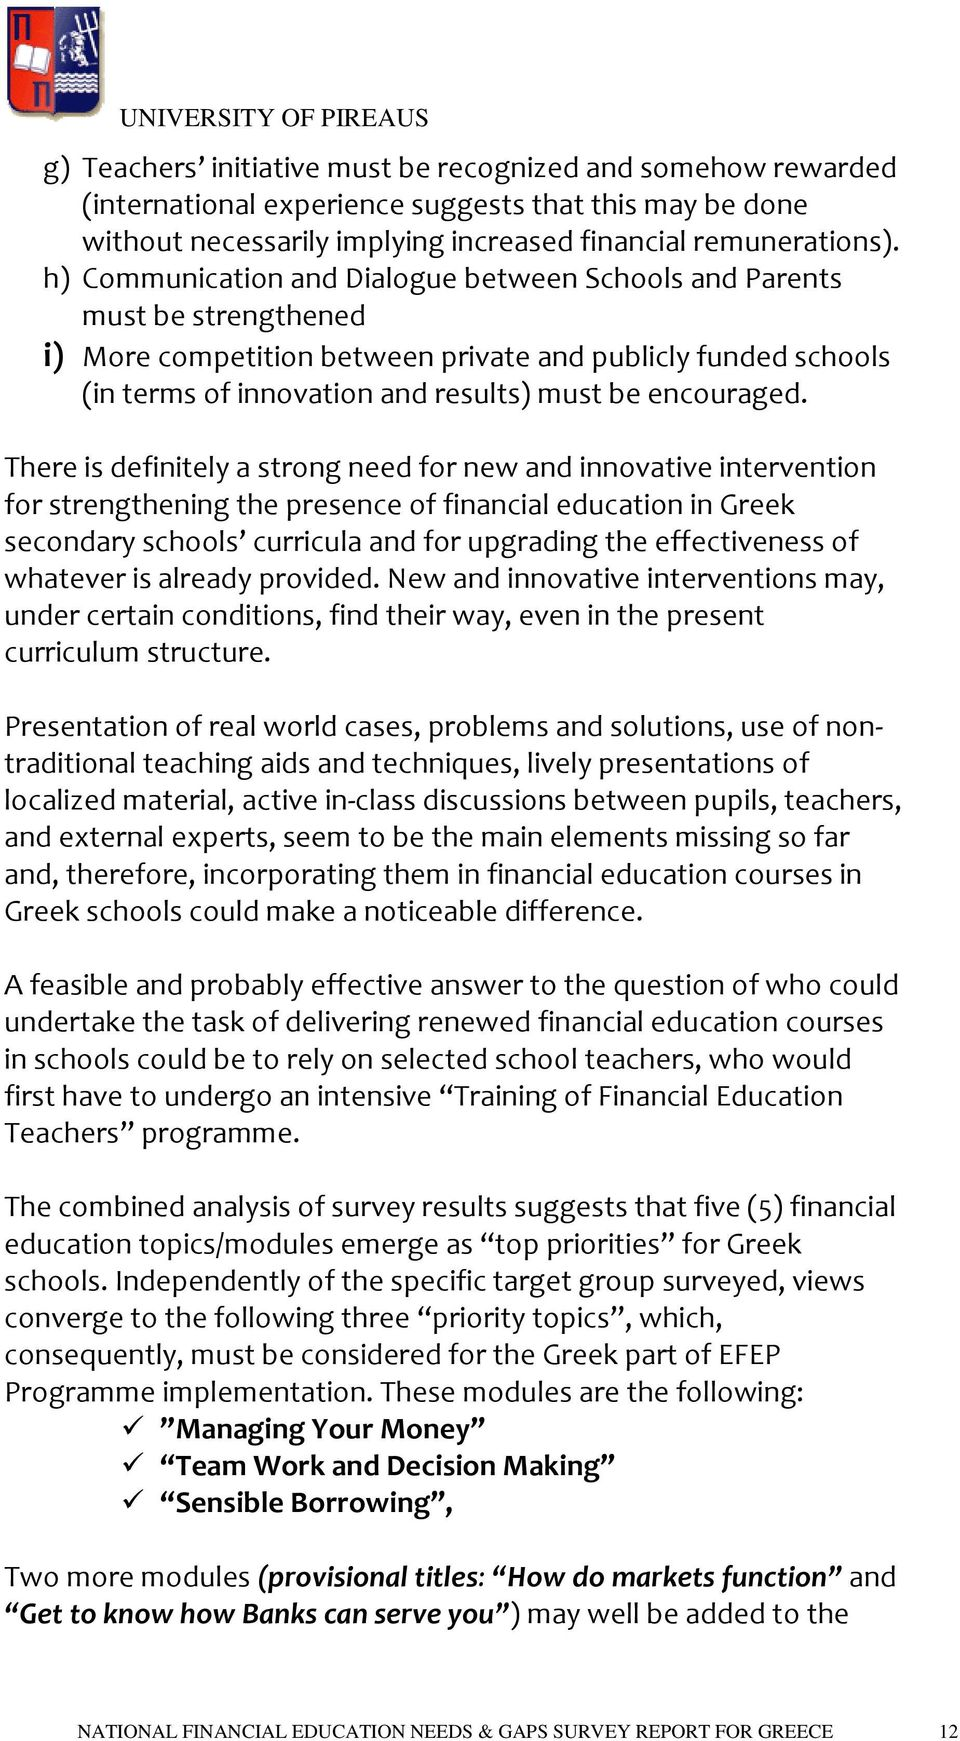 There is definitely a strong need for new and innovative intervention for strengthening the presence of financial education in Greek secondary schools curricula and for upgrading the effectiveness of